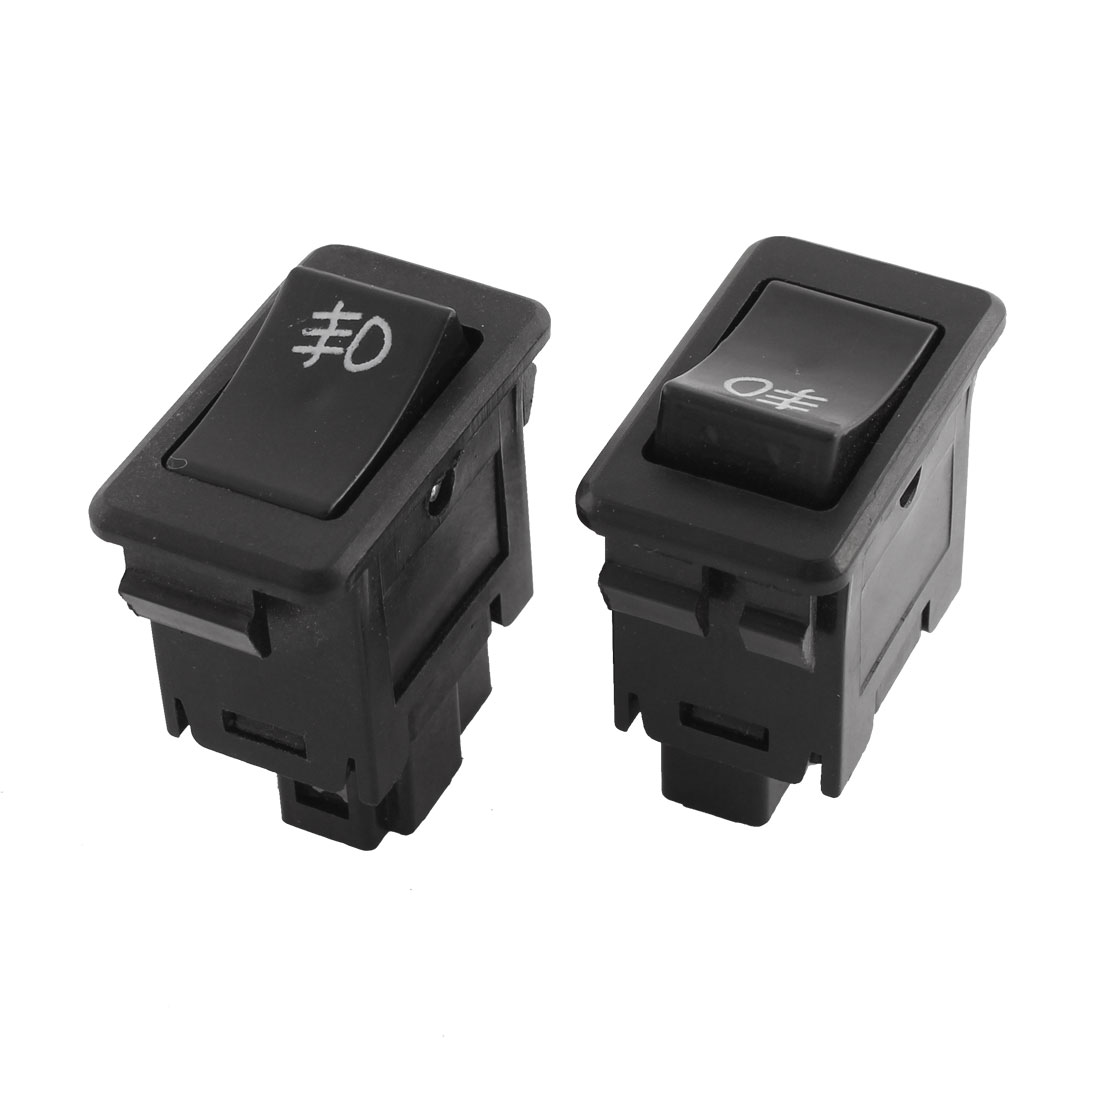 2 Pcs DC 12V SPST ON OFF 2 Pin Rocker Boat Switch Black for Car Fog Light Lamp